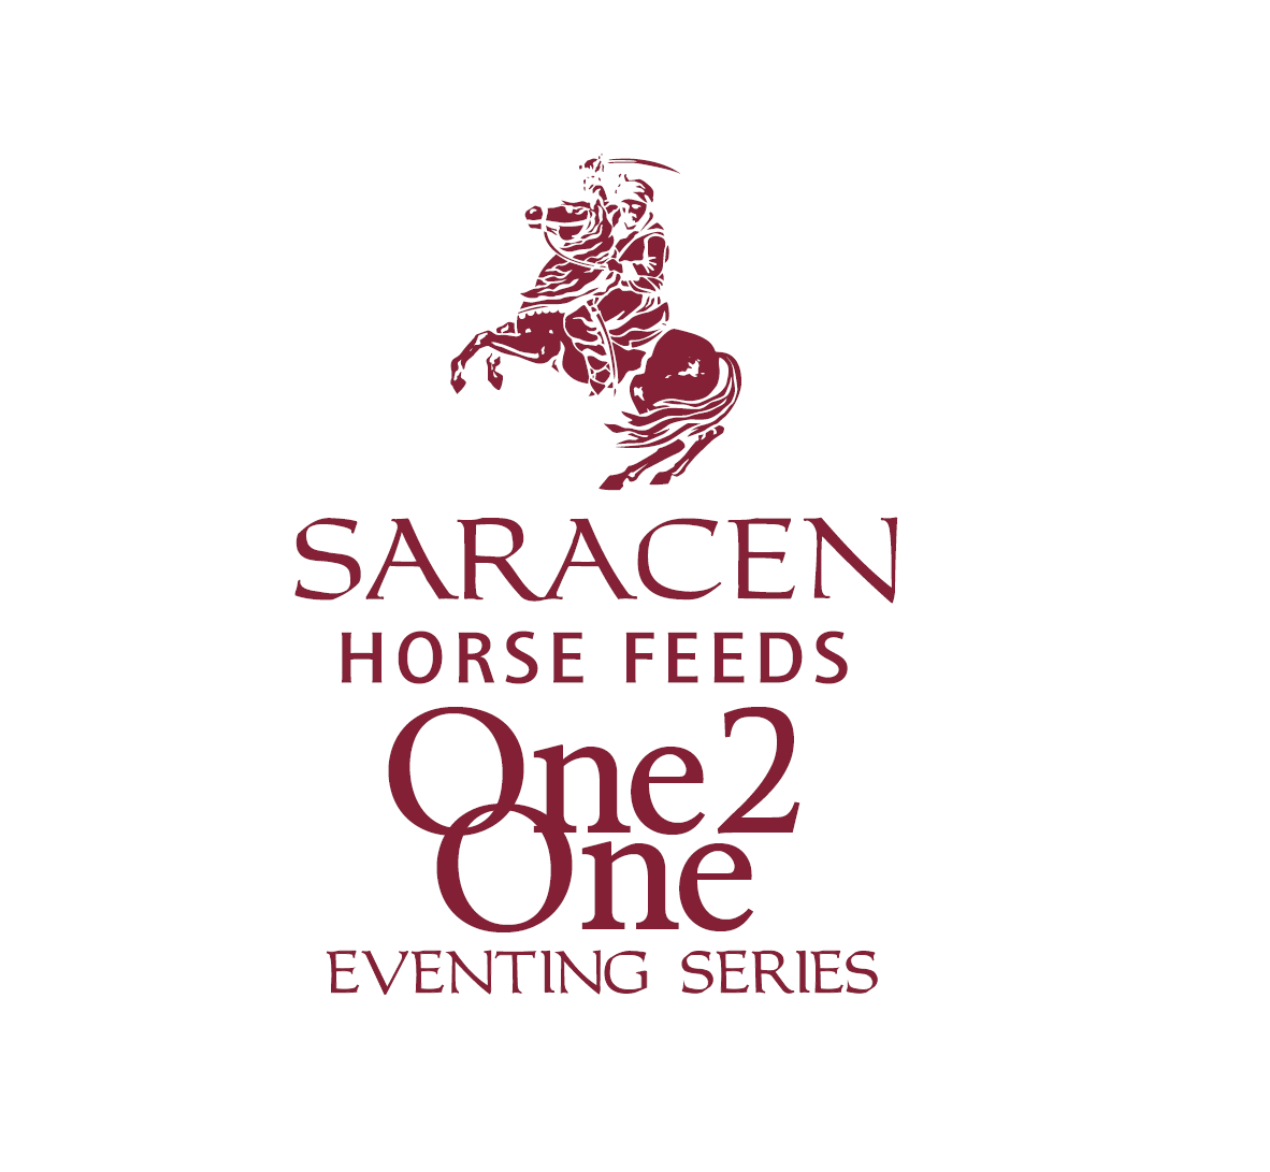 Latest News One2 One eventing series